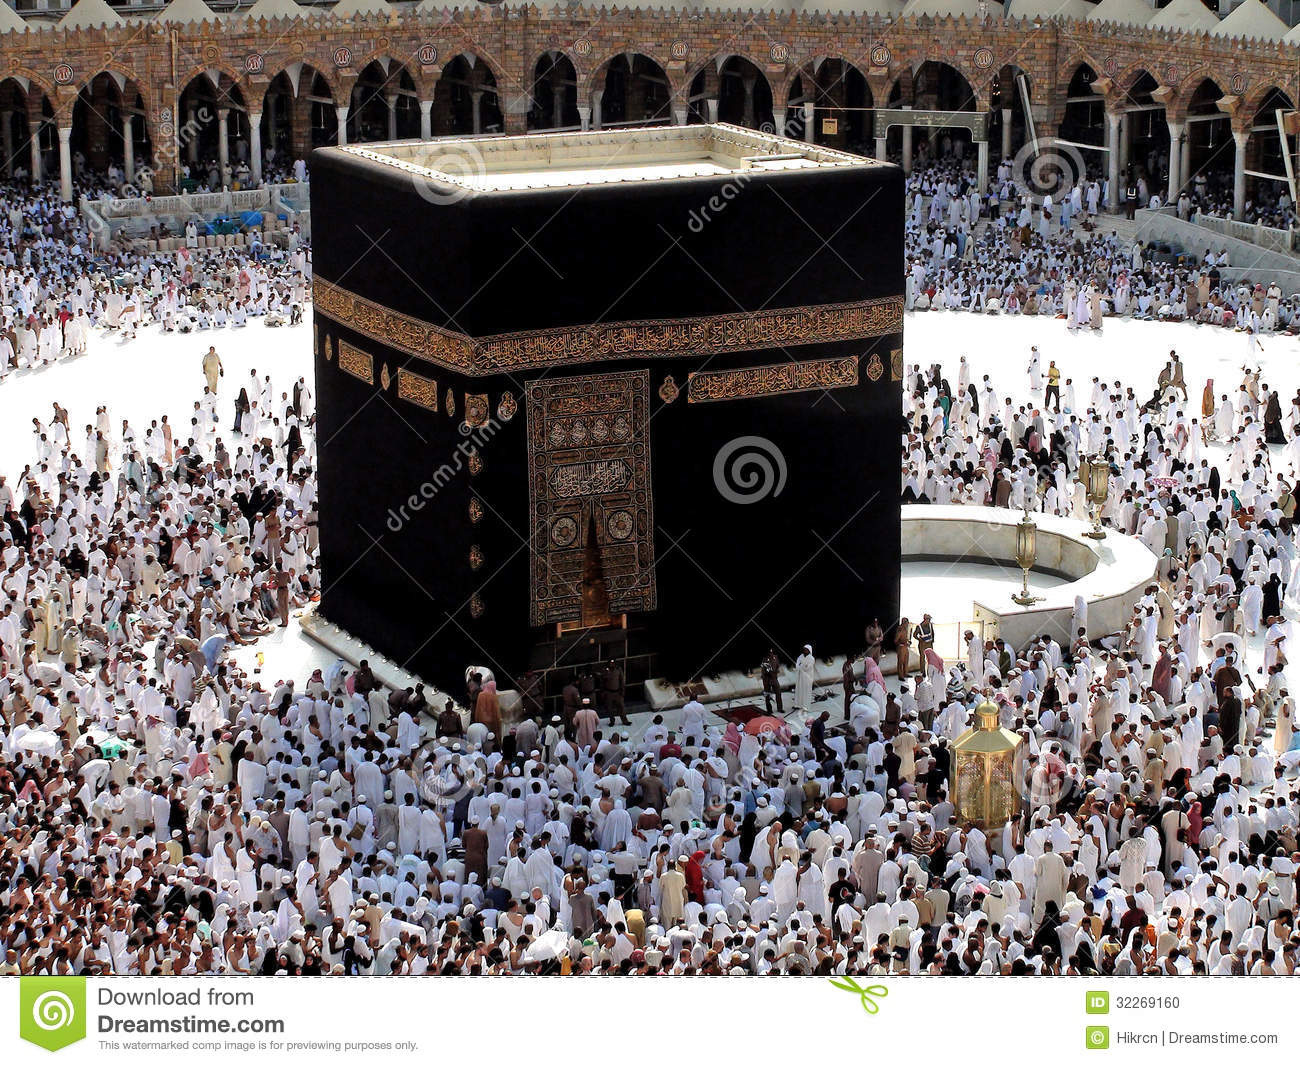 Pin by cleanblog on Mecca ??? | Pinterest | Mecca